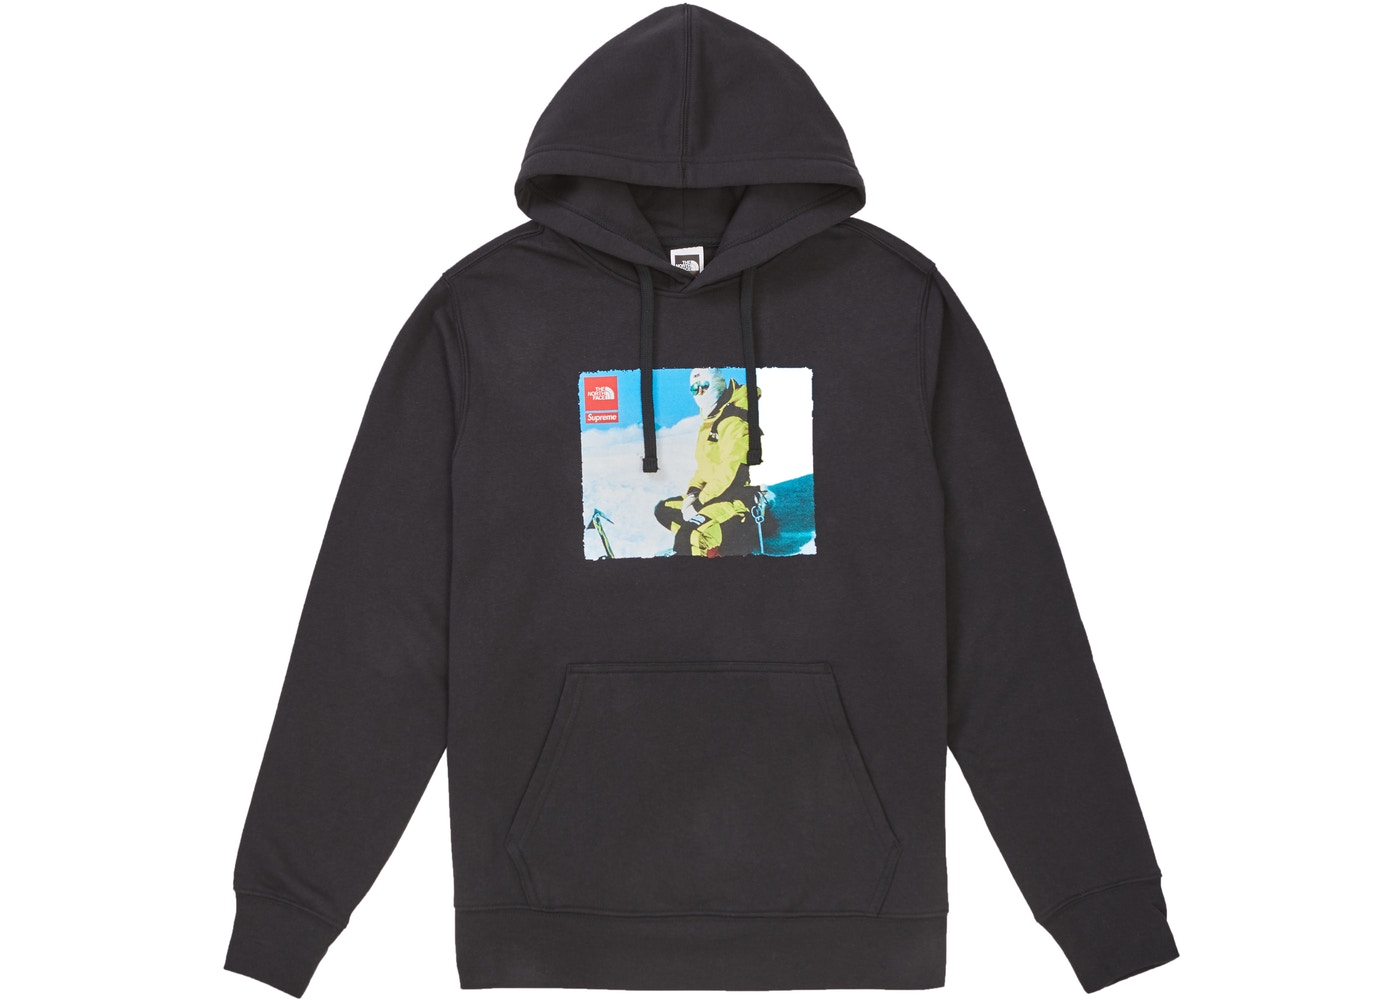 fab33a77d Supreme The North Face Photo Hooded Sweatshirt Black